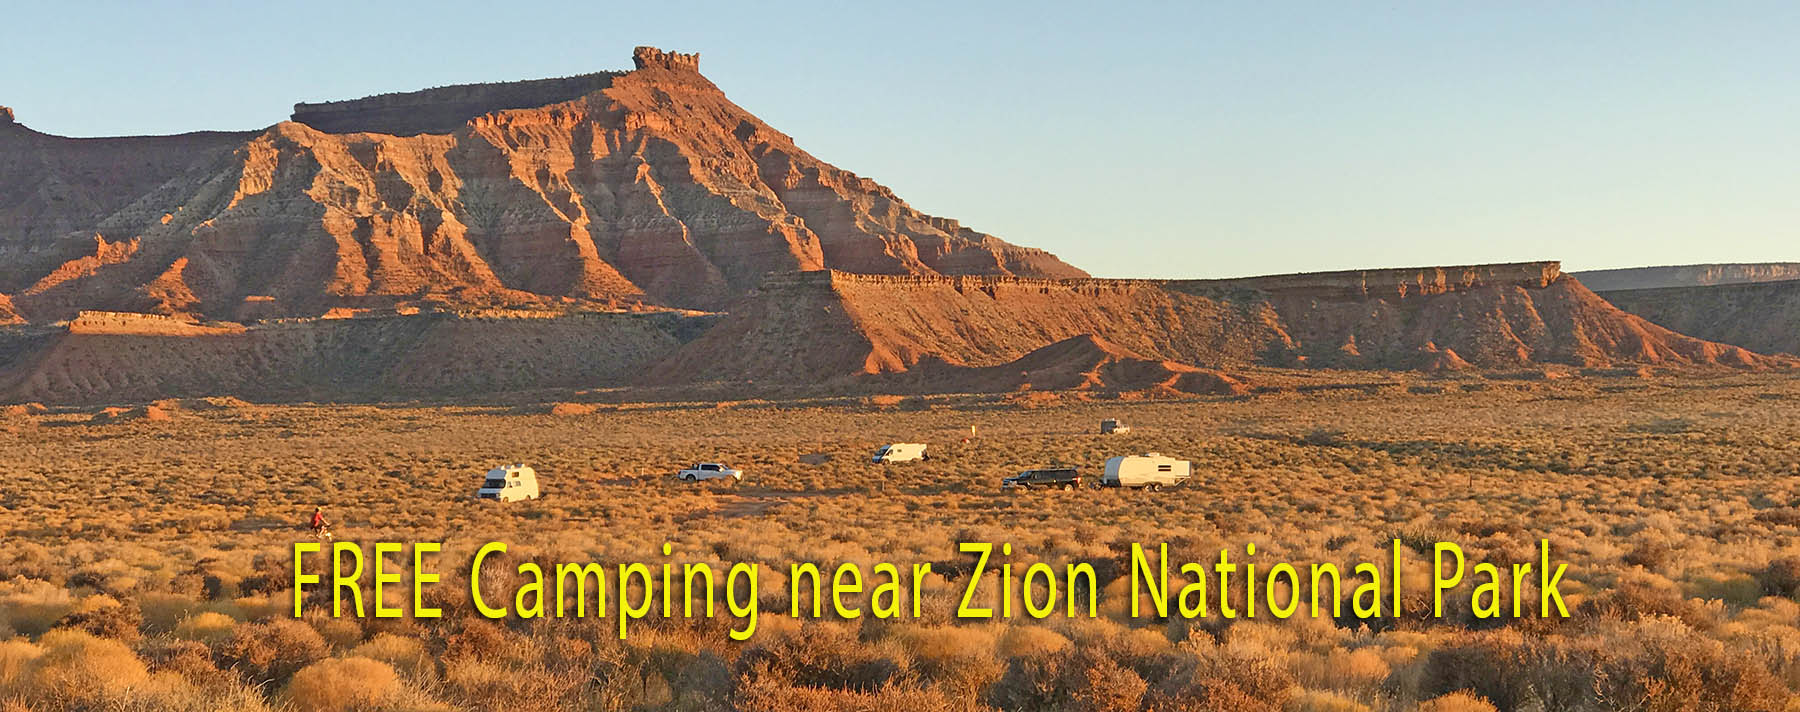 Free Camping Zion National Park